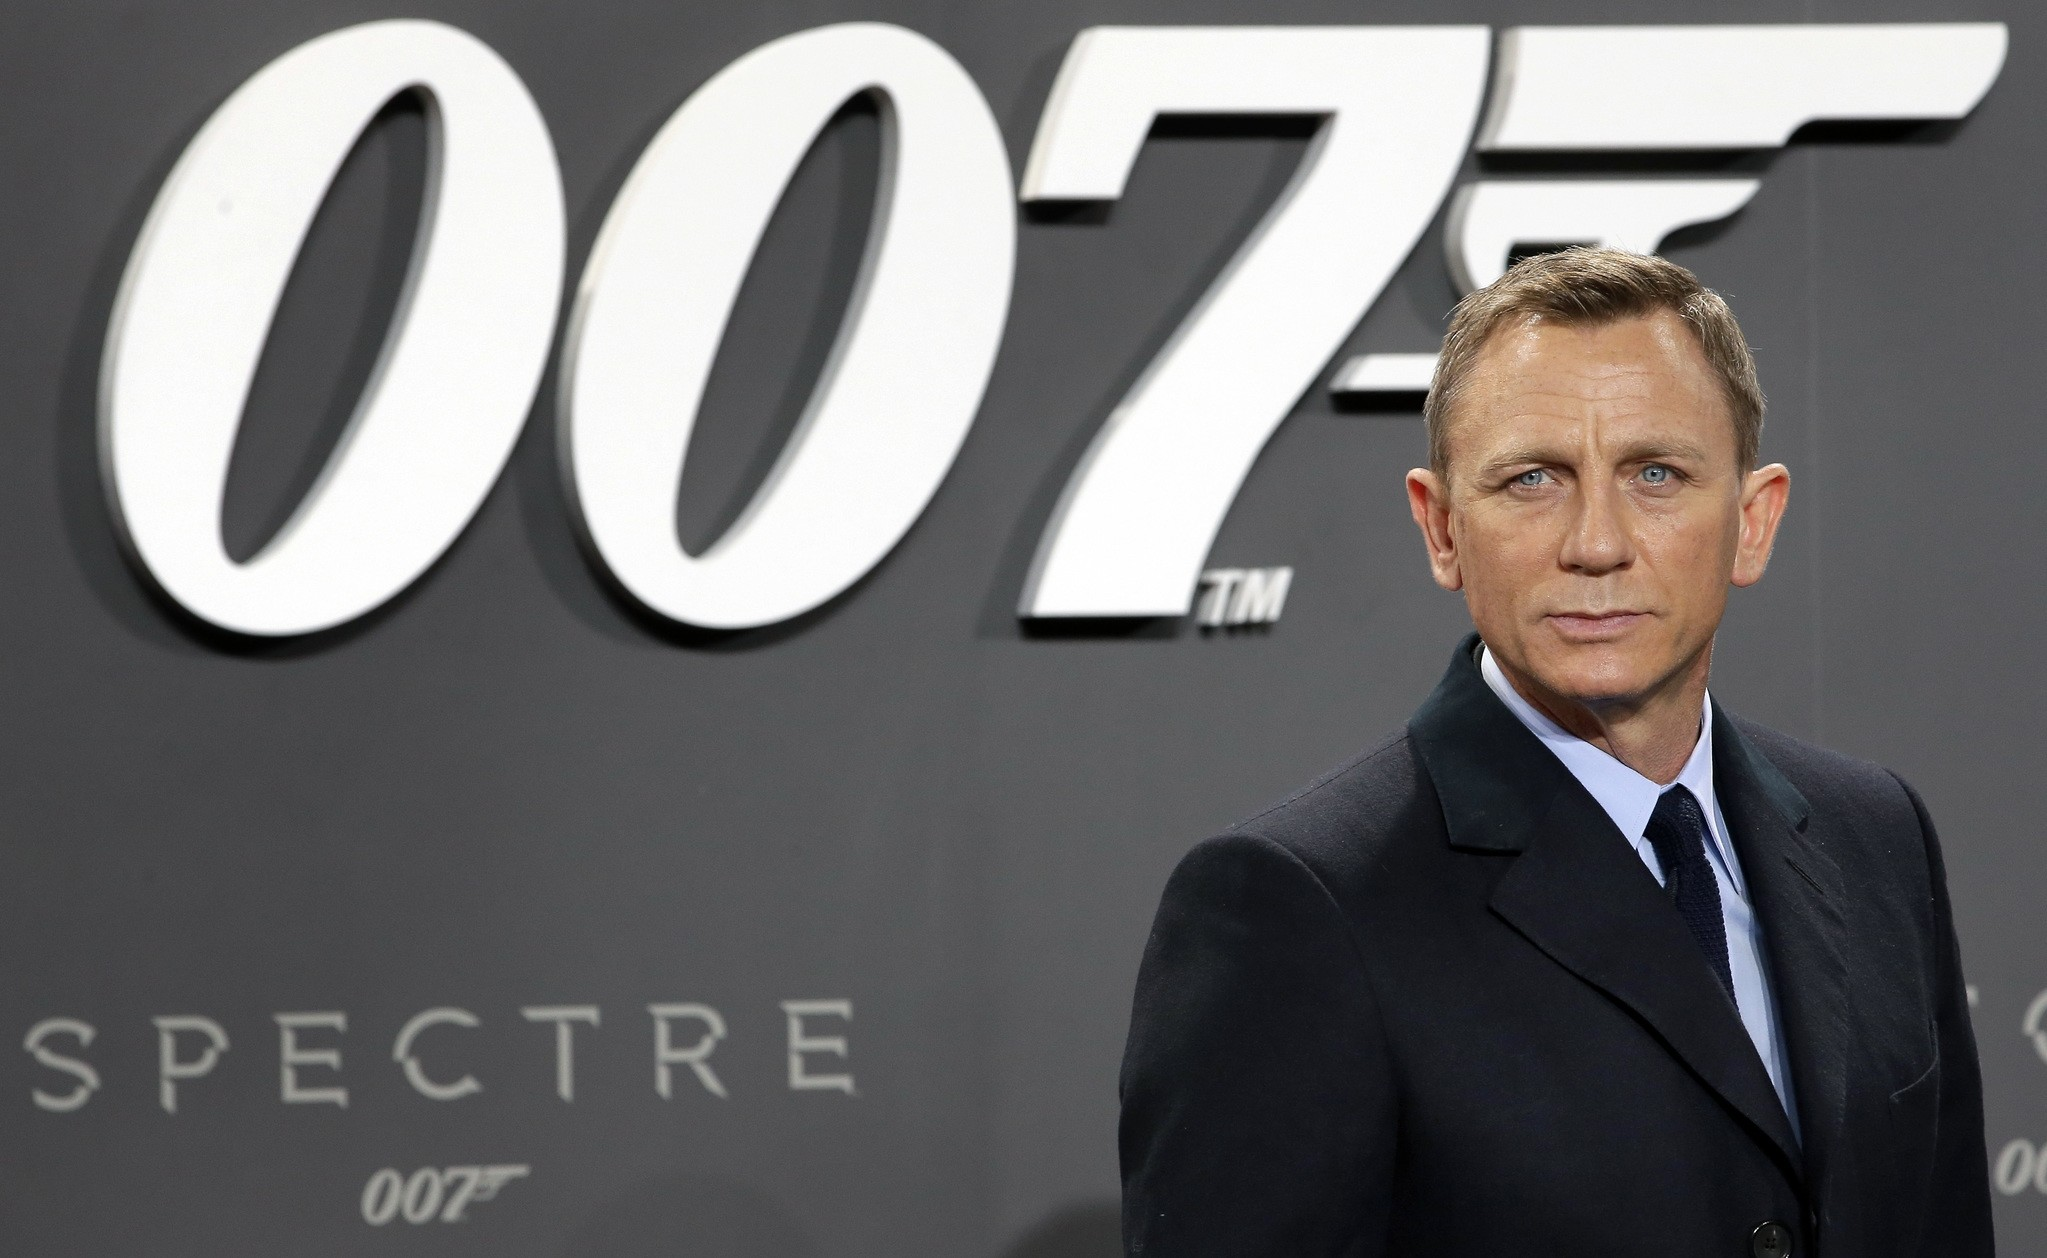 This is an Oct. 28, 2015 file photo of actor Daniel Craig poses for the media as he arrives for the German premiere of the James Bond movie 'Spectre' in Berlin. (AP Photo)